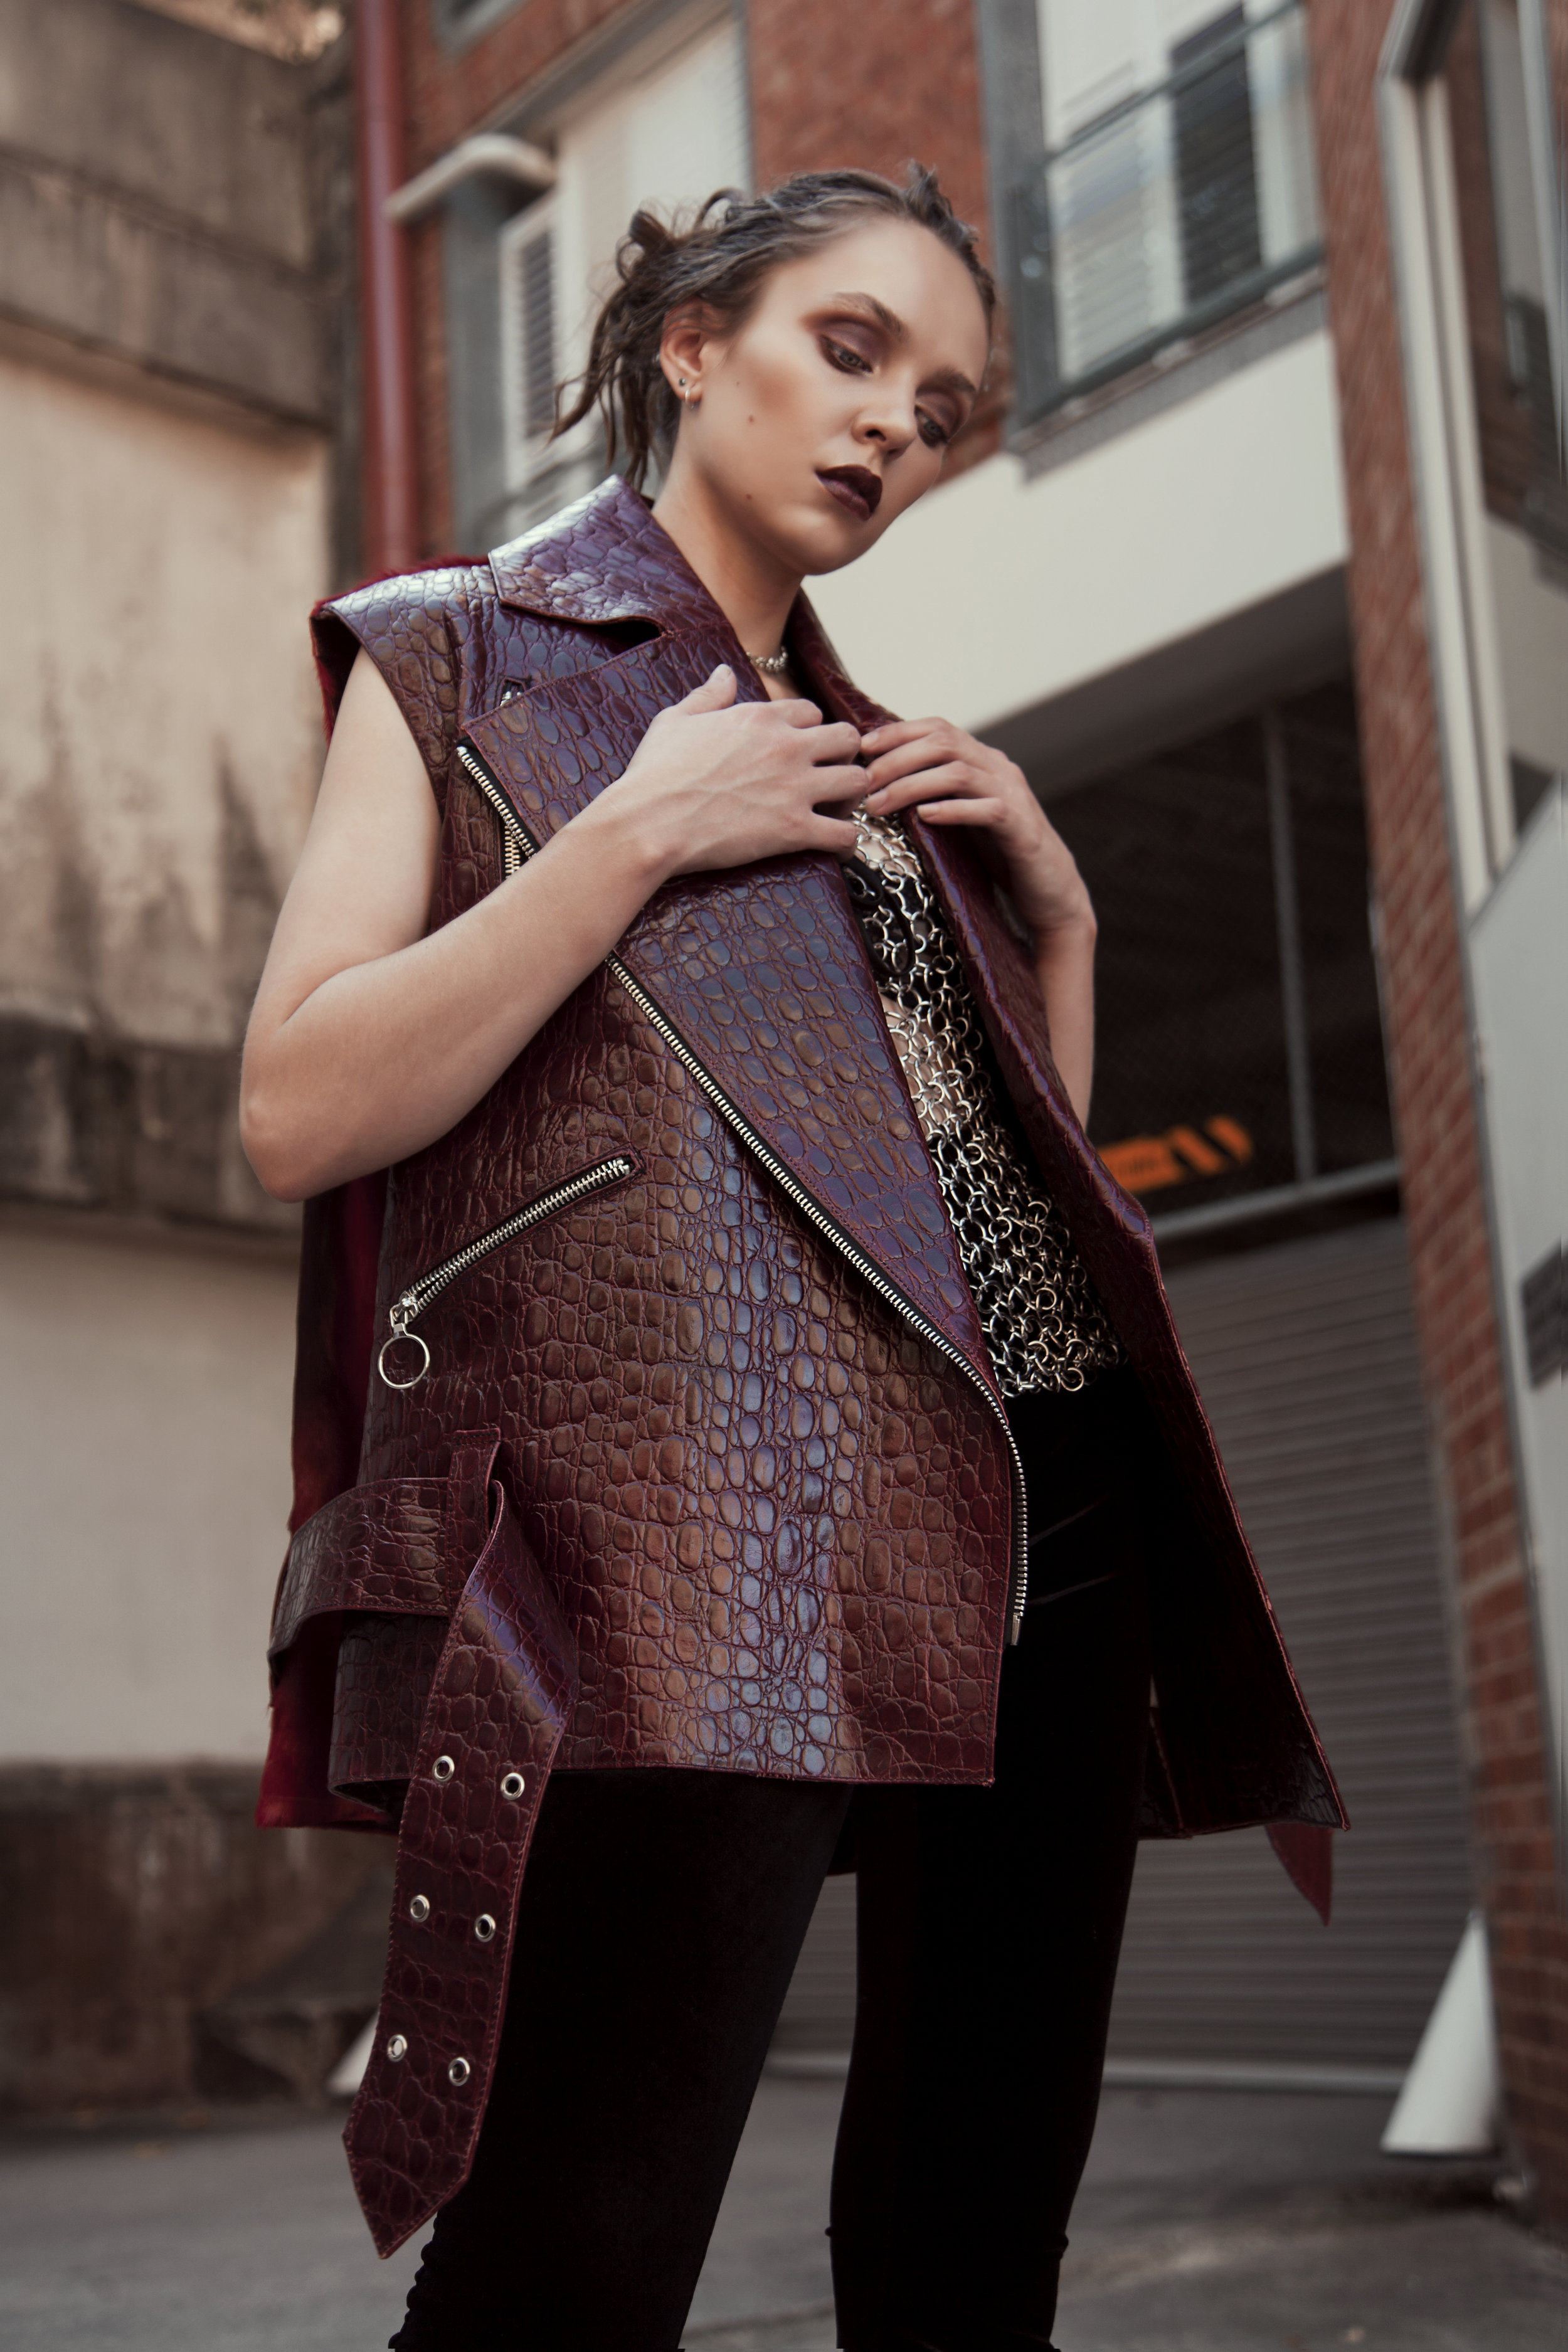 Top: Stephanie Schafer / Vest: Zephyr Collection / Pants: Verge Girl / Shoes: Current MoodChoker: Nat Kent